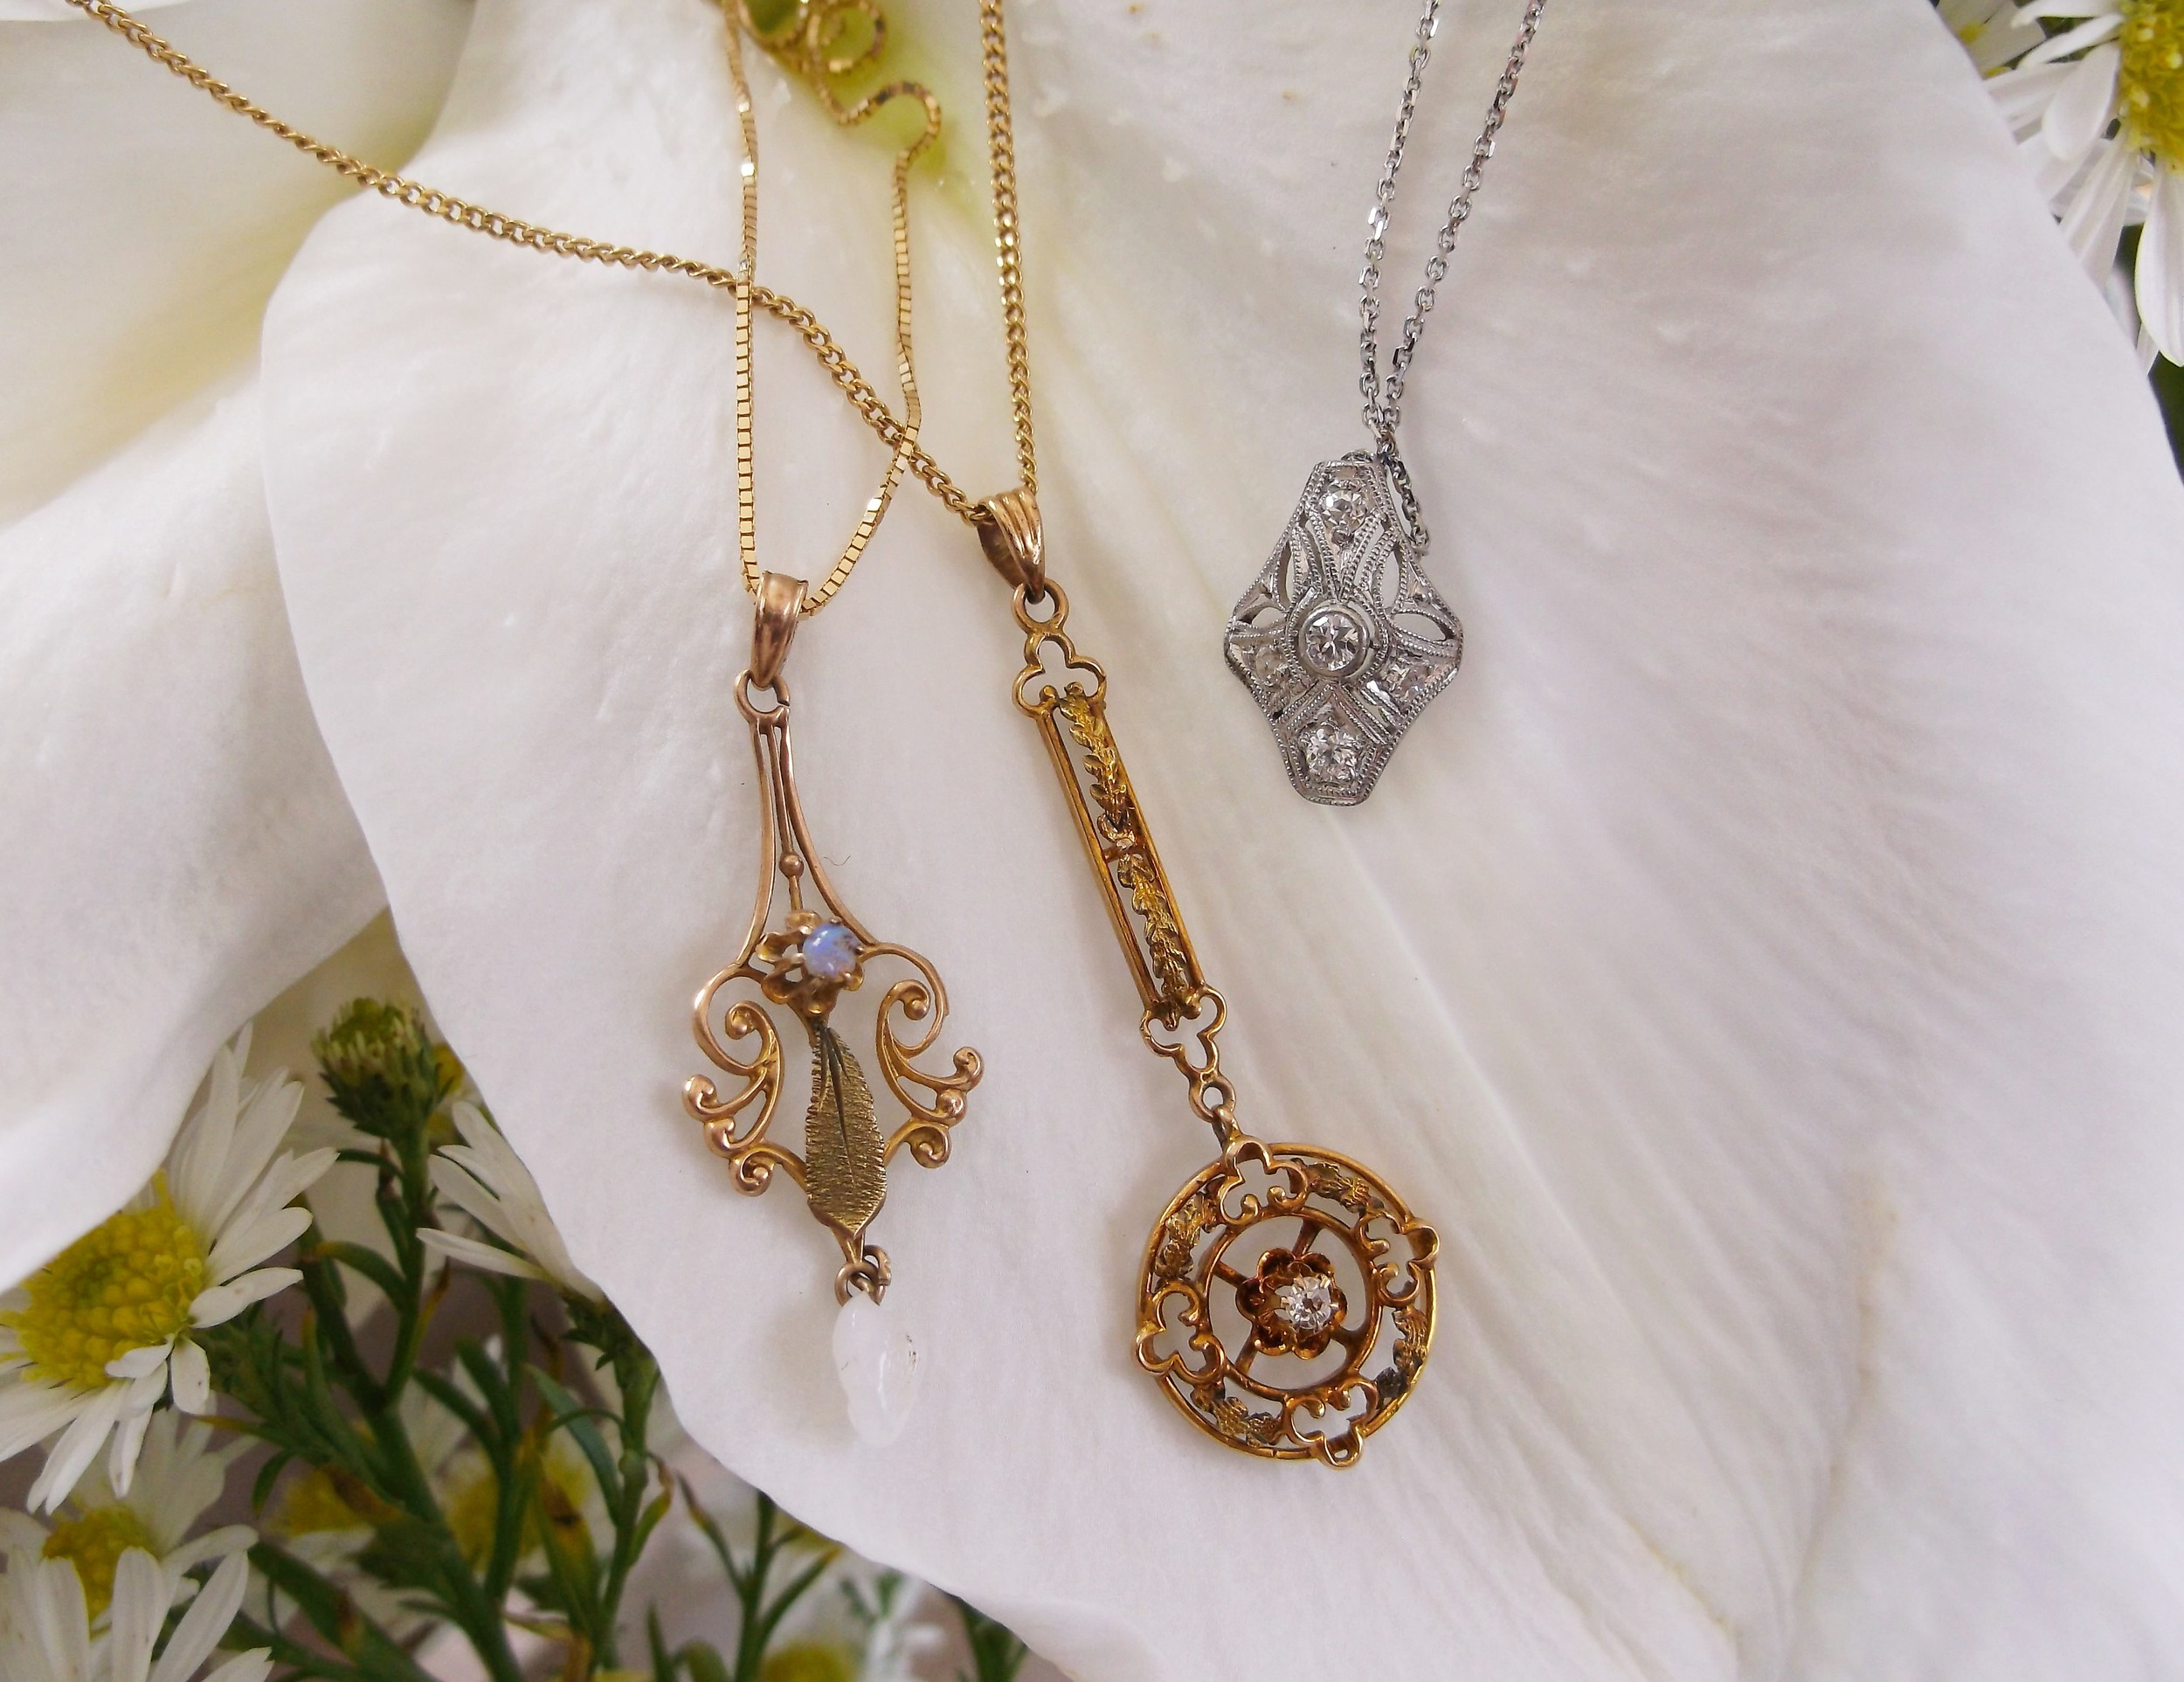 Lovely collection of antique pendants! Left: SOLD - Victorian era 10K yellow gold, opal and pearl pendant. Middle: SOLD - Victorian era 10K yellow gold and diamond pendant. Right: SOLD -  Art Deco era 0.20 carat total weight diamond and platinum pendant.